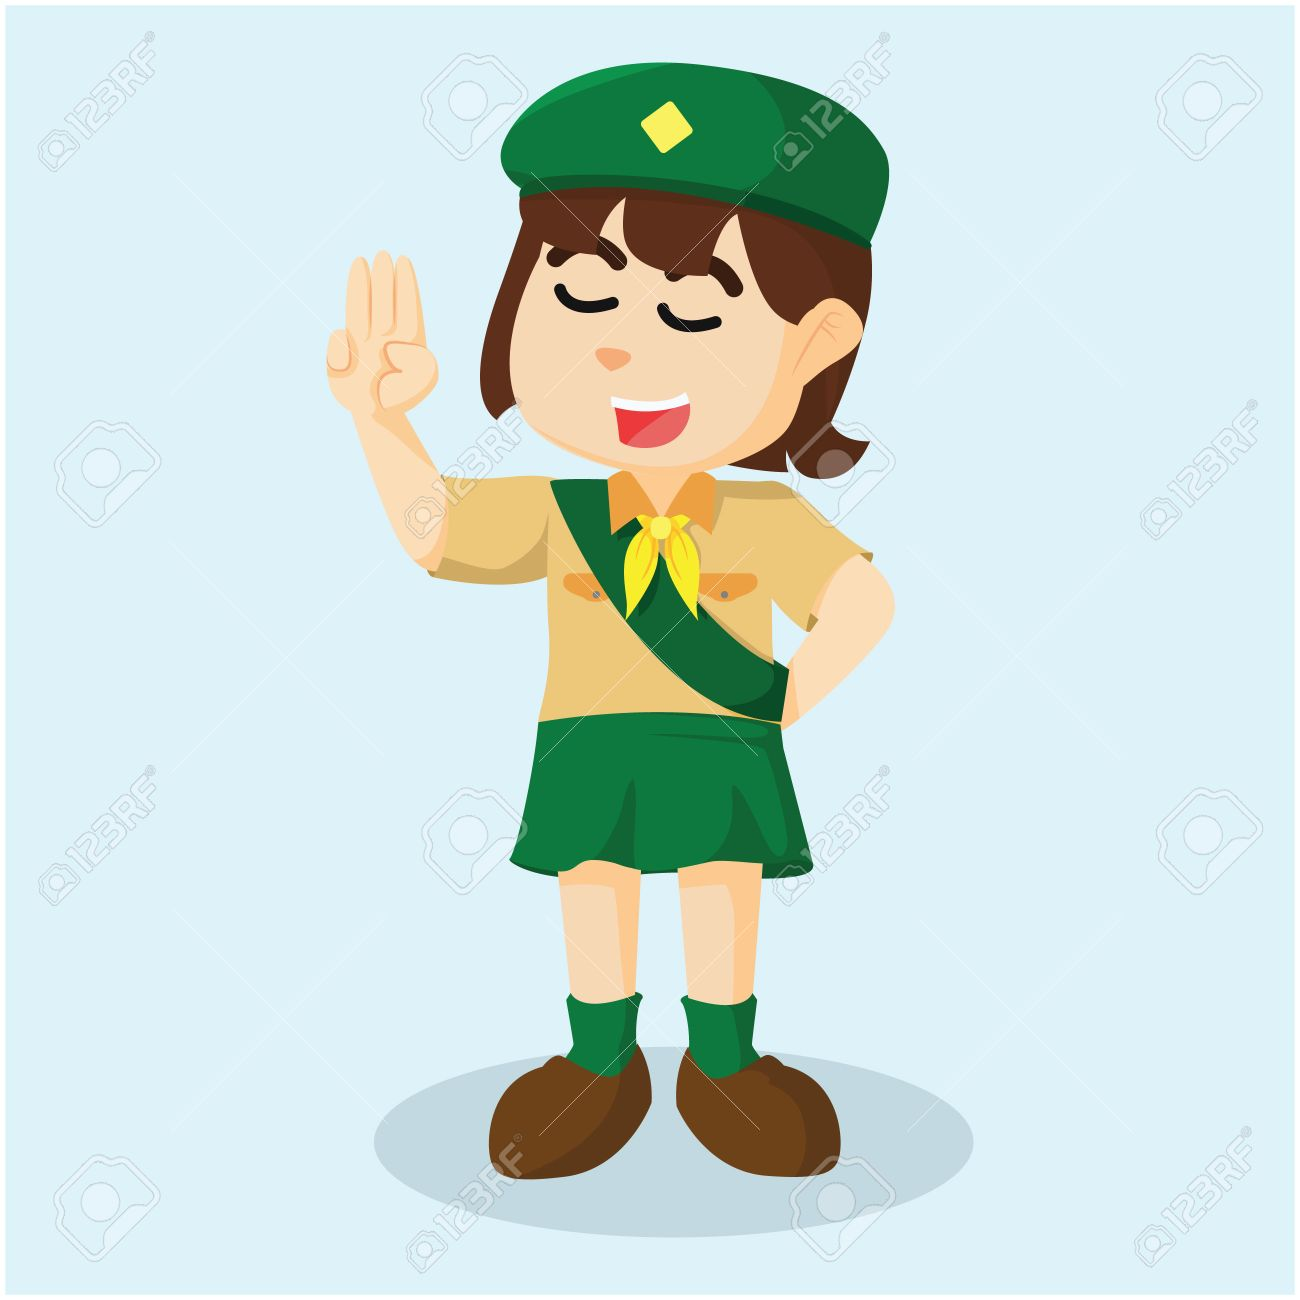 Girl Scout Salute Illustration Royalty Free Cliparts Vectors And